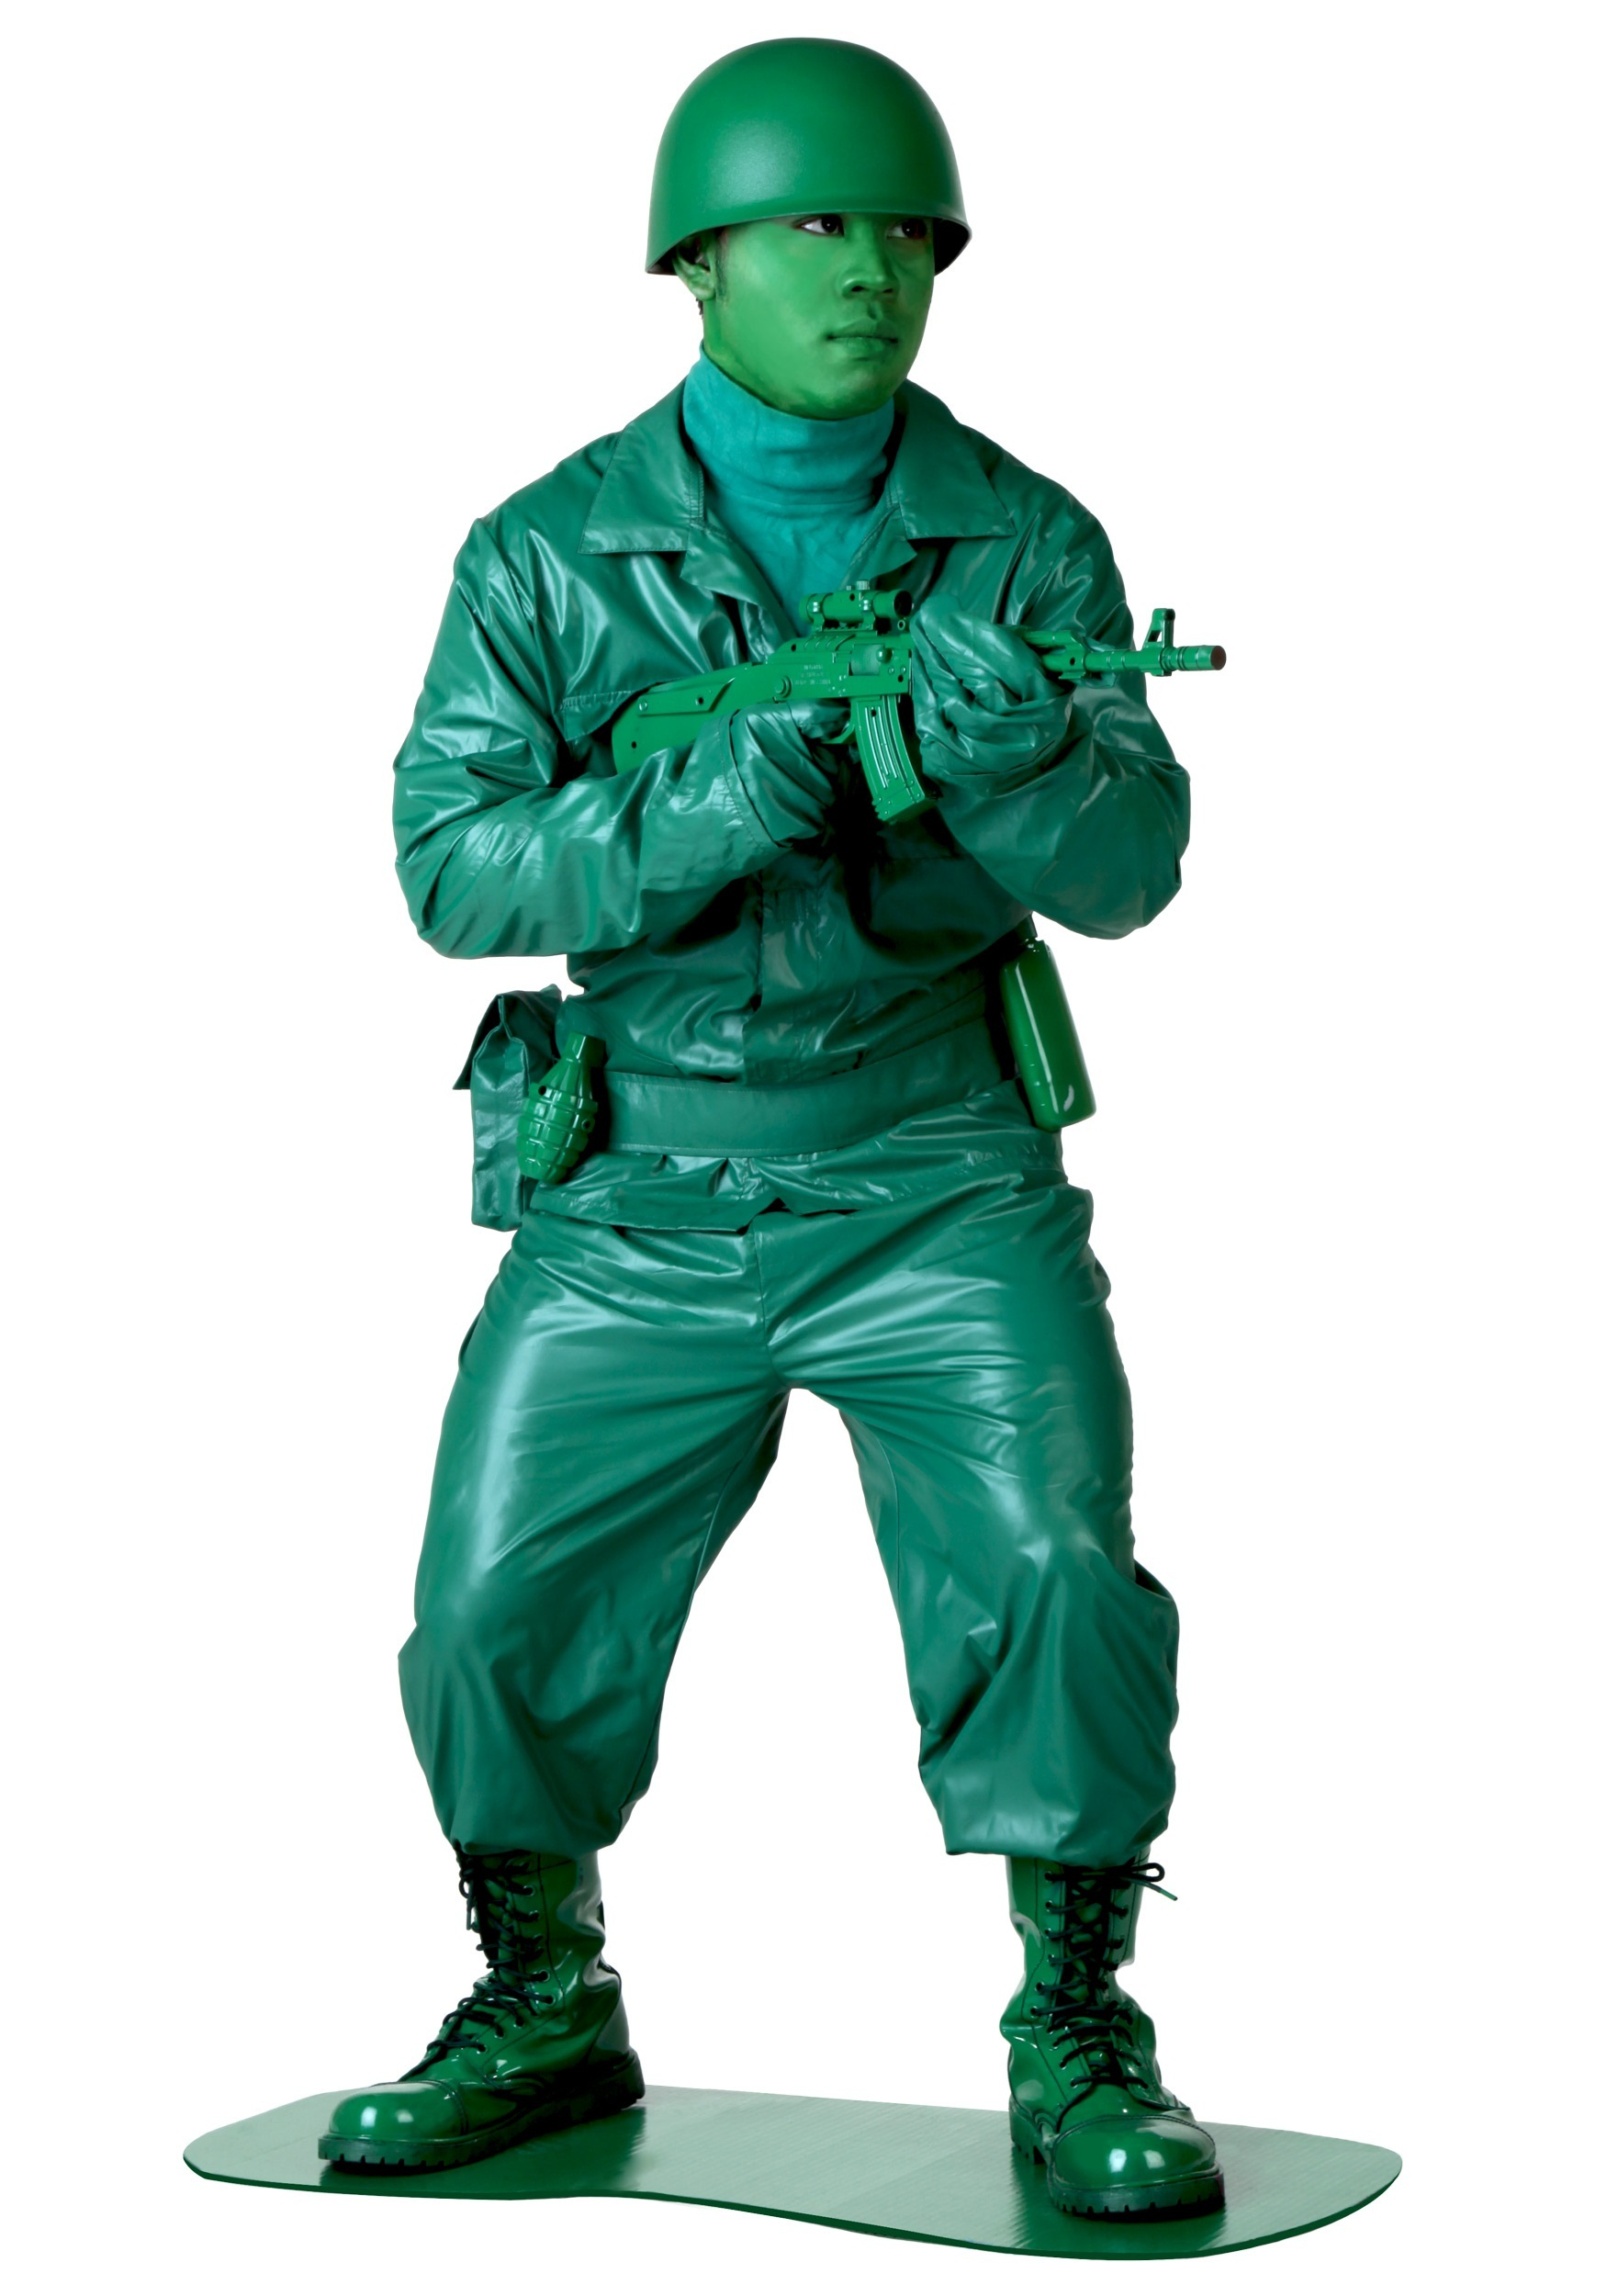 Plus Size Green Army Man Costume  sc 1 st  Halloween Costumes & Plus Size Green Army Man Costume - Halloween Costumes